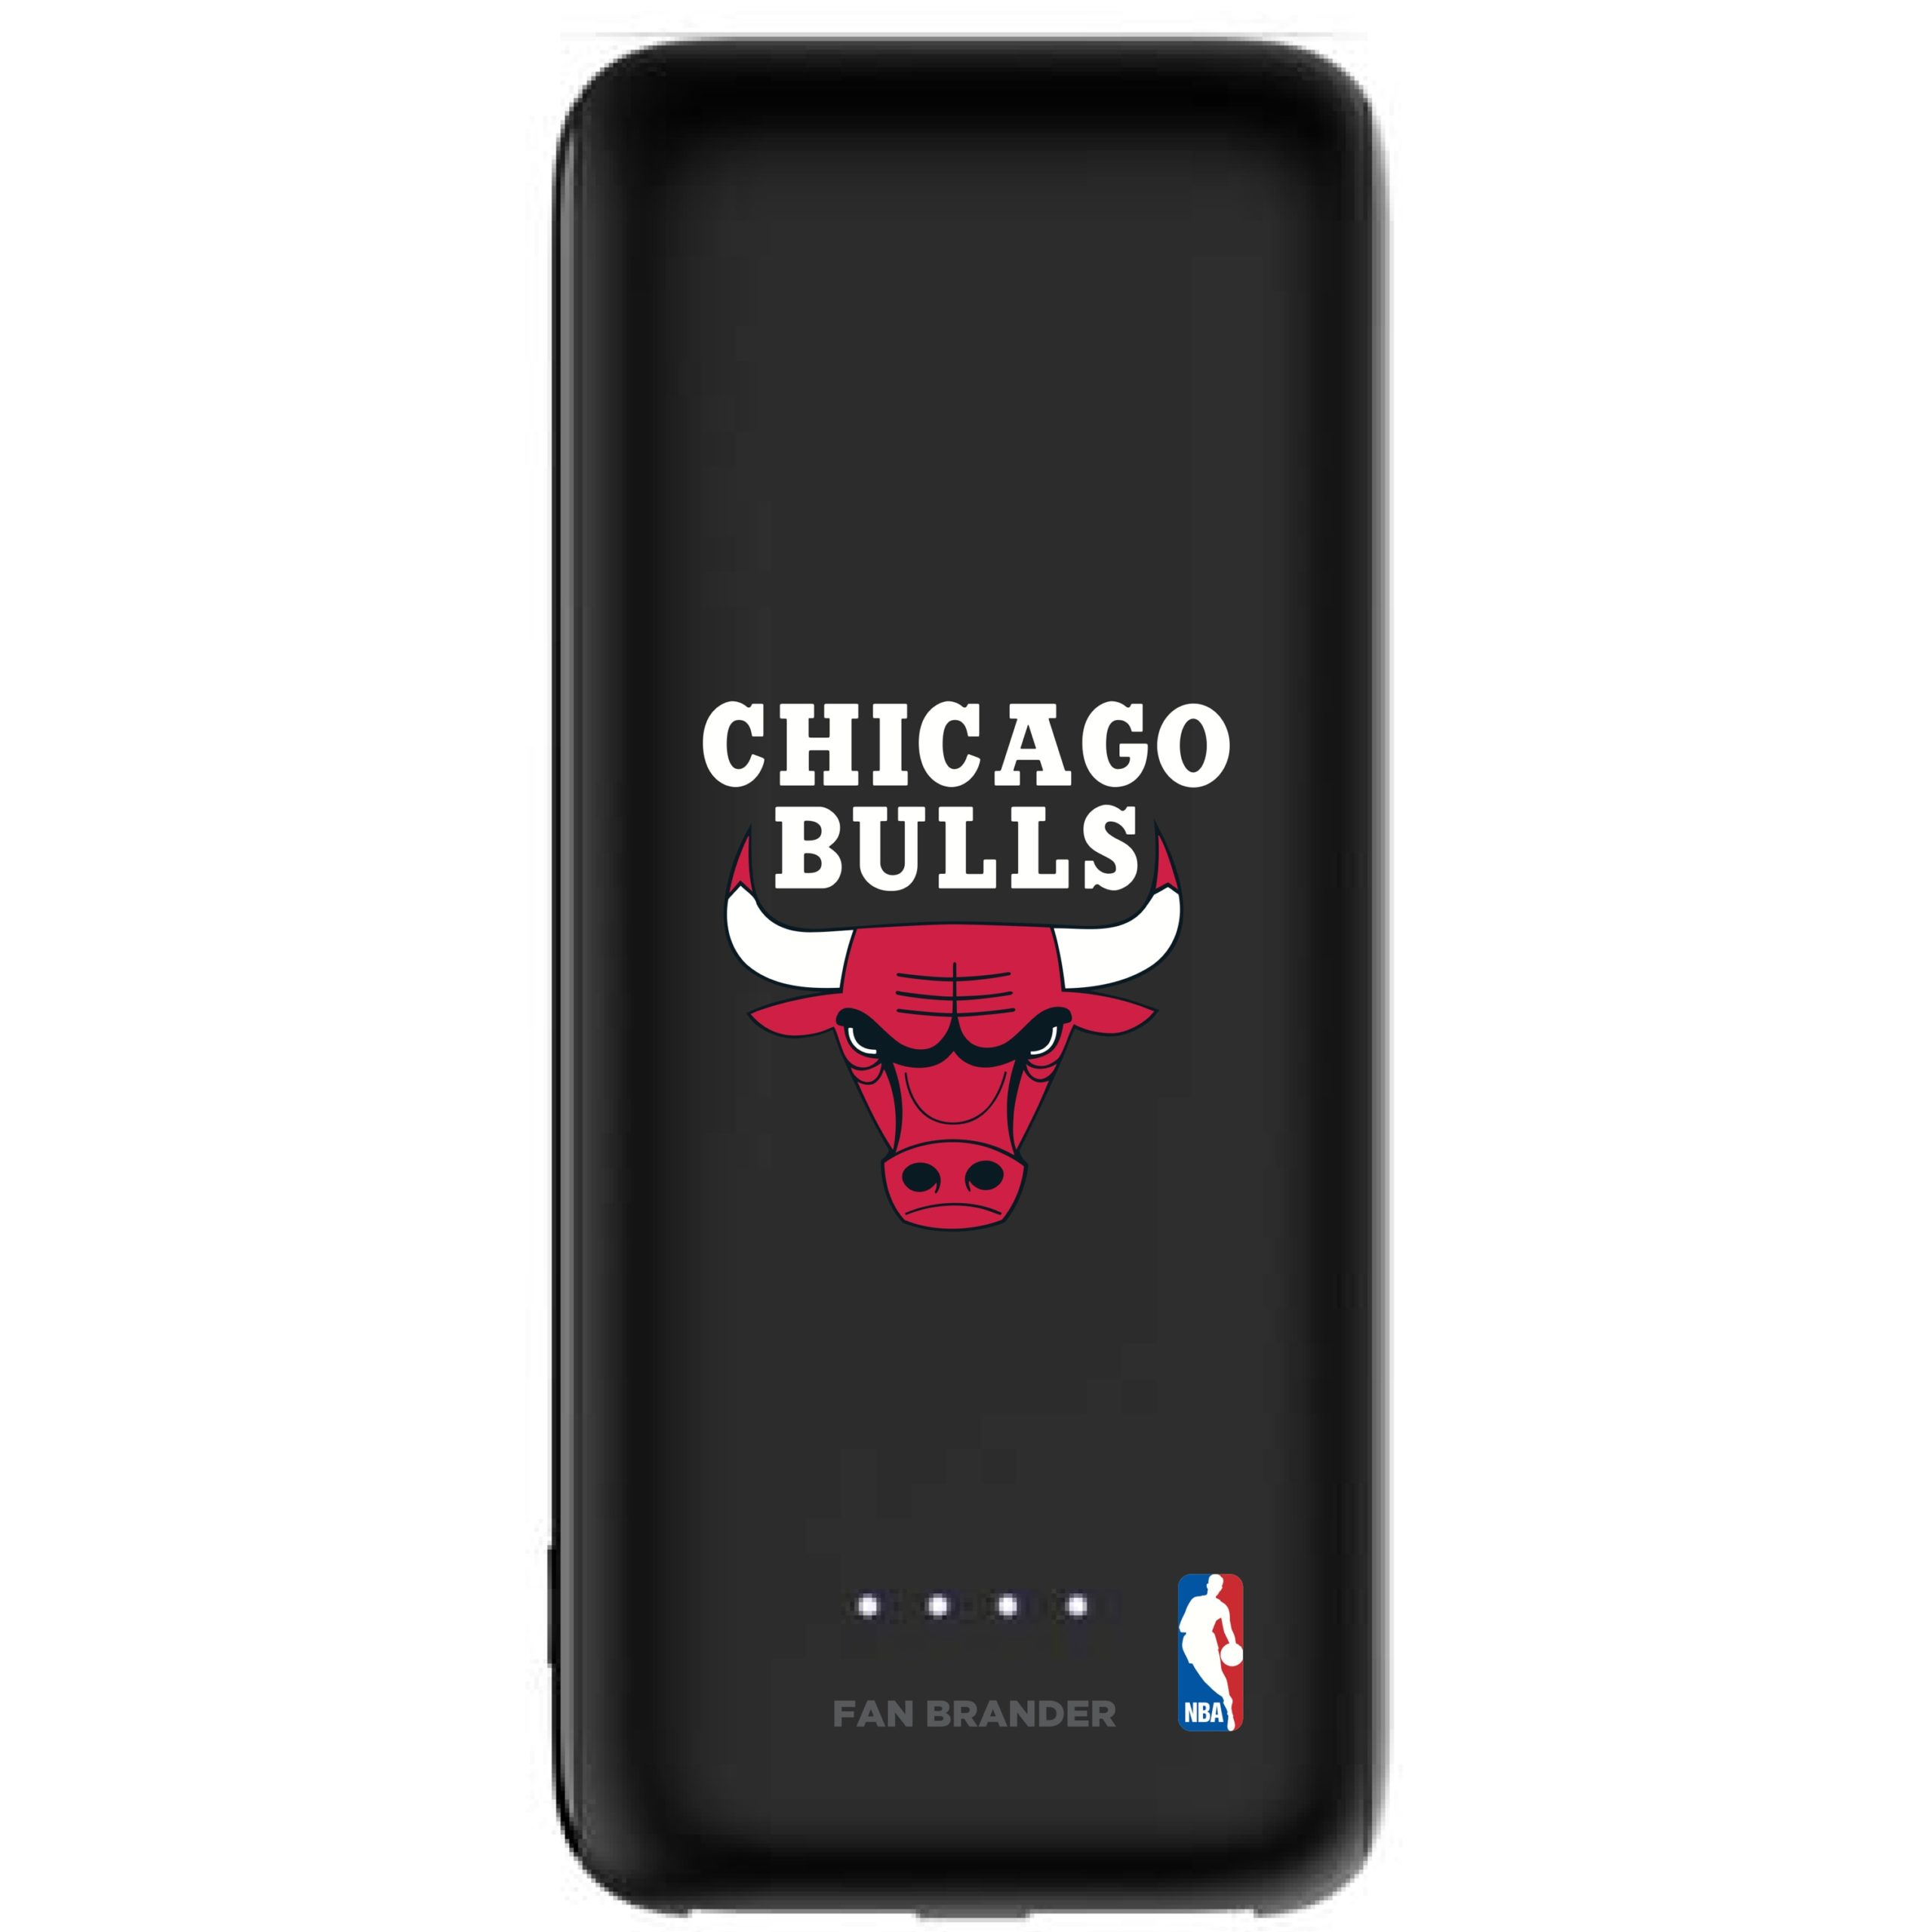 Chicago Bulls mophie 5200 mAh Universal Battery Power Boost